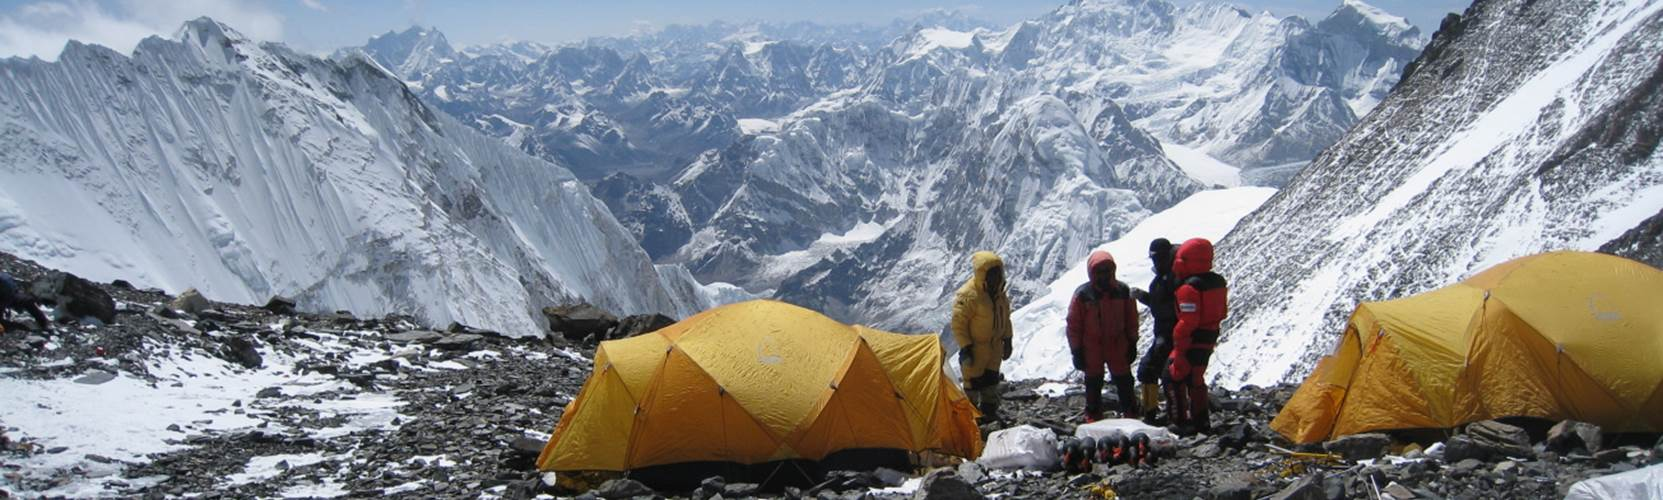 Seven Summit - Mount Everest, south col